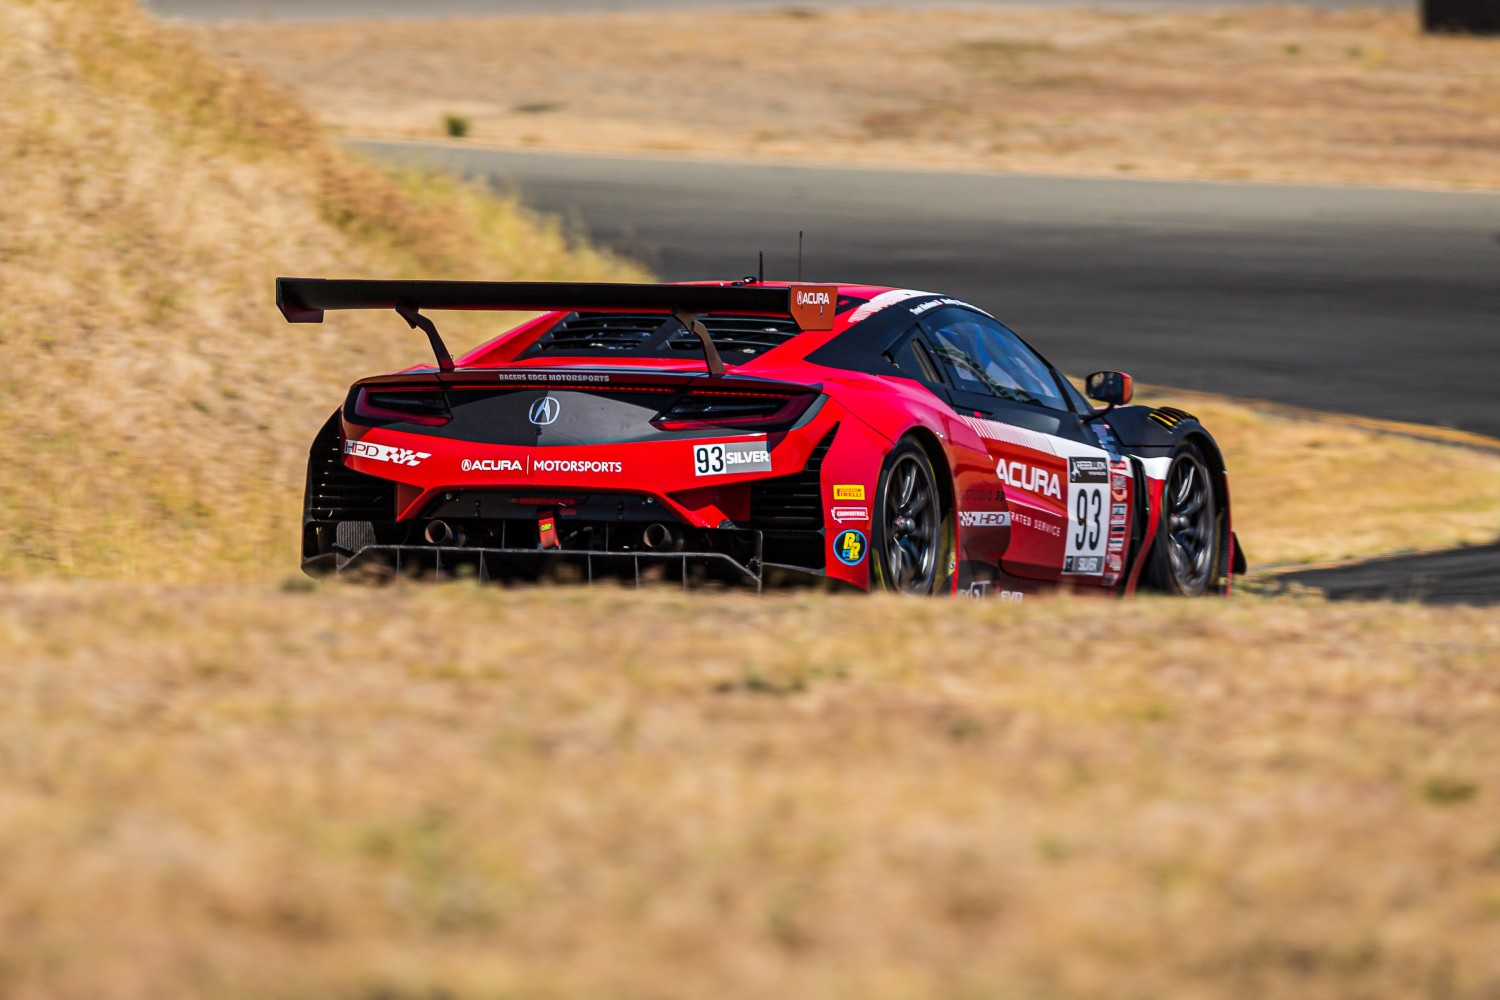 #93 Acura NSX GT3 of Shelby Blackstock and Trent Hindman, Racers Edge Motorsports, GT3 Pro-Am, 2020 SRO Motorsports Group - Sonoma Raceway, Sonoma CA